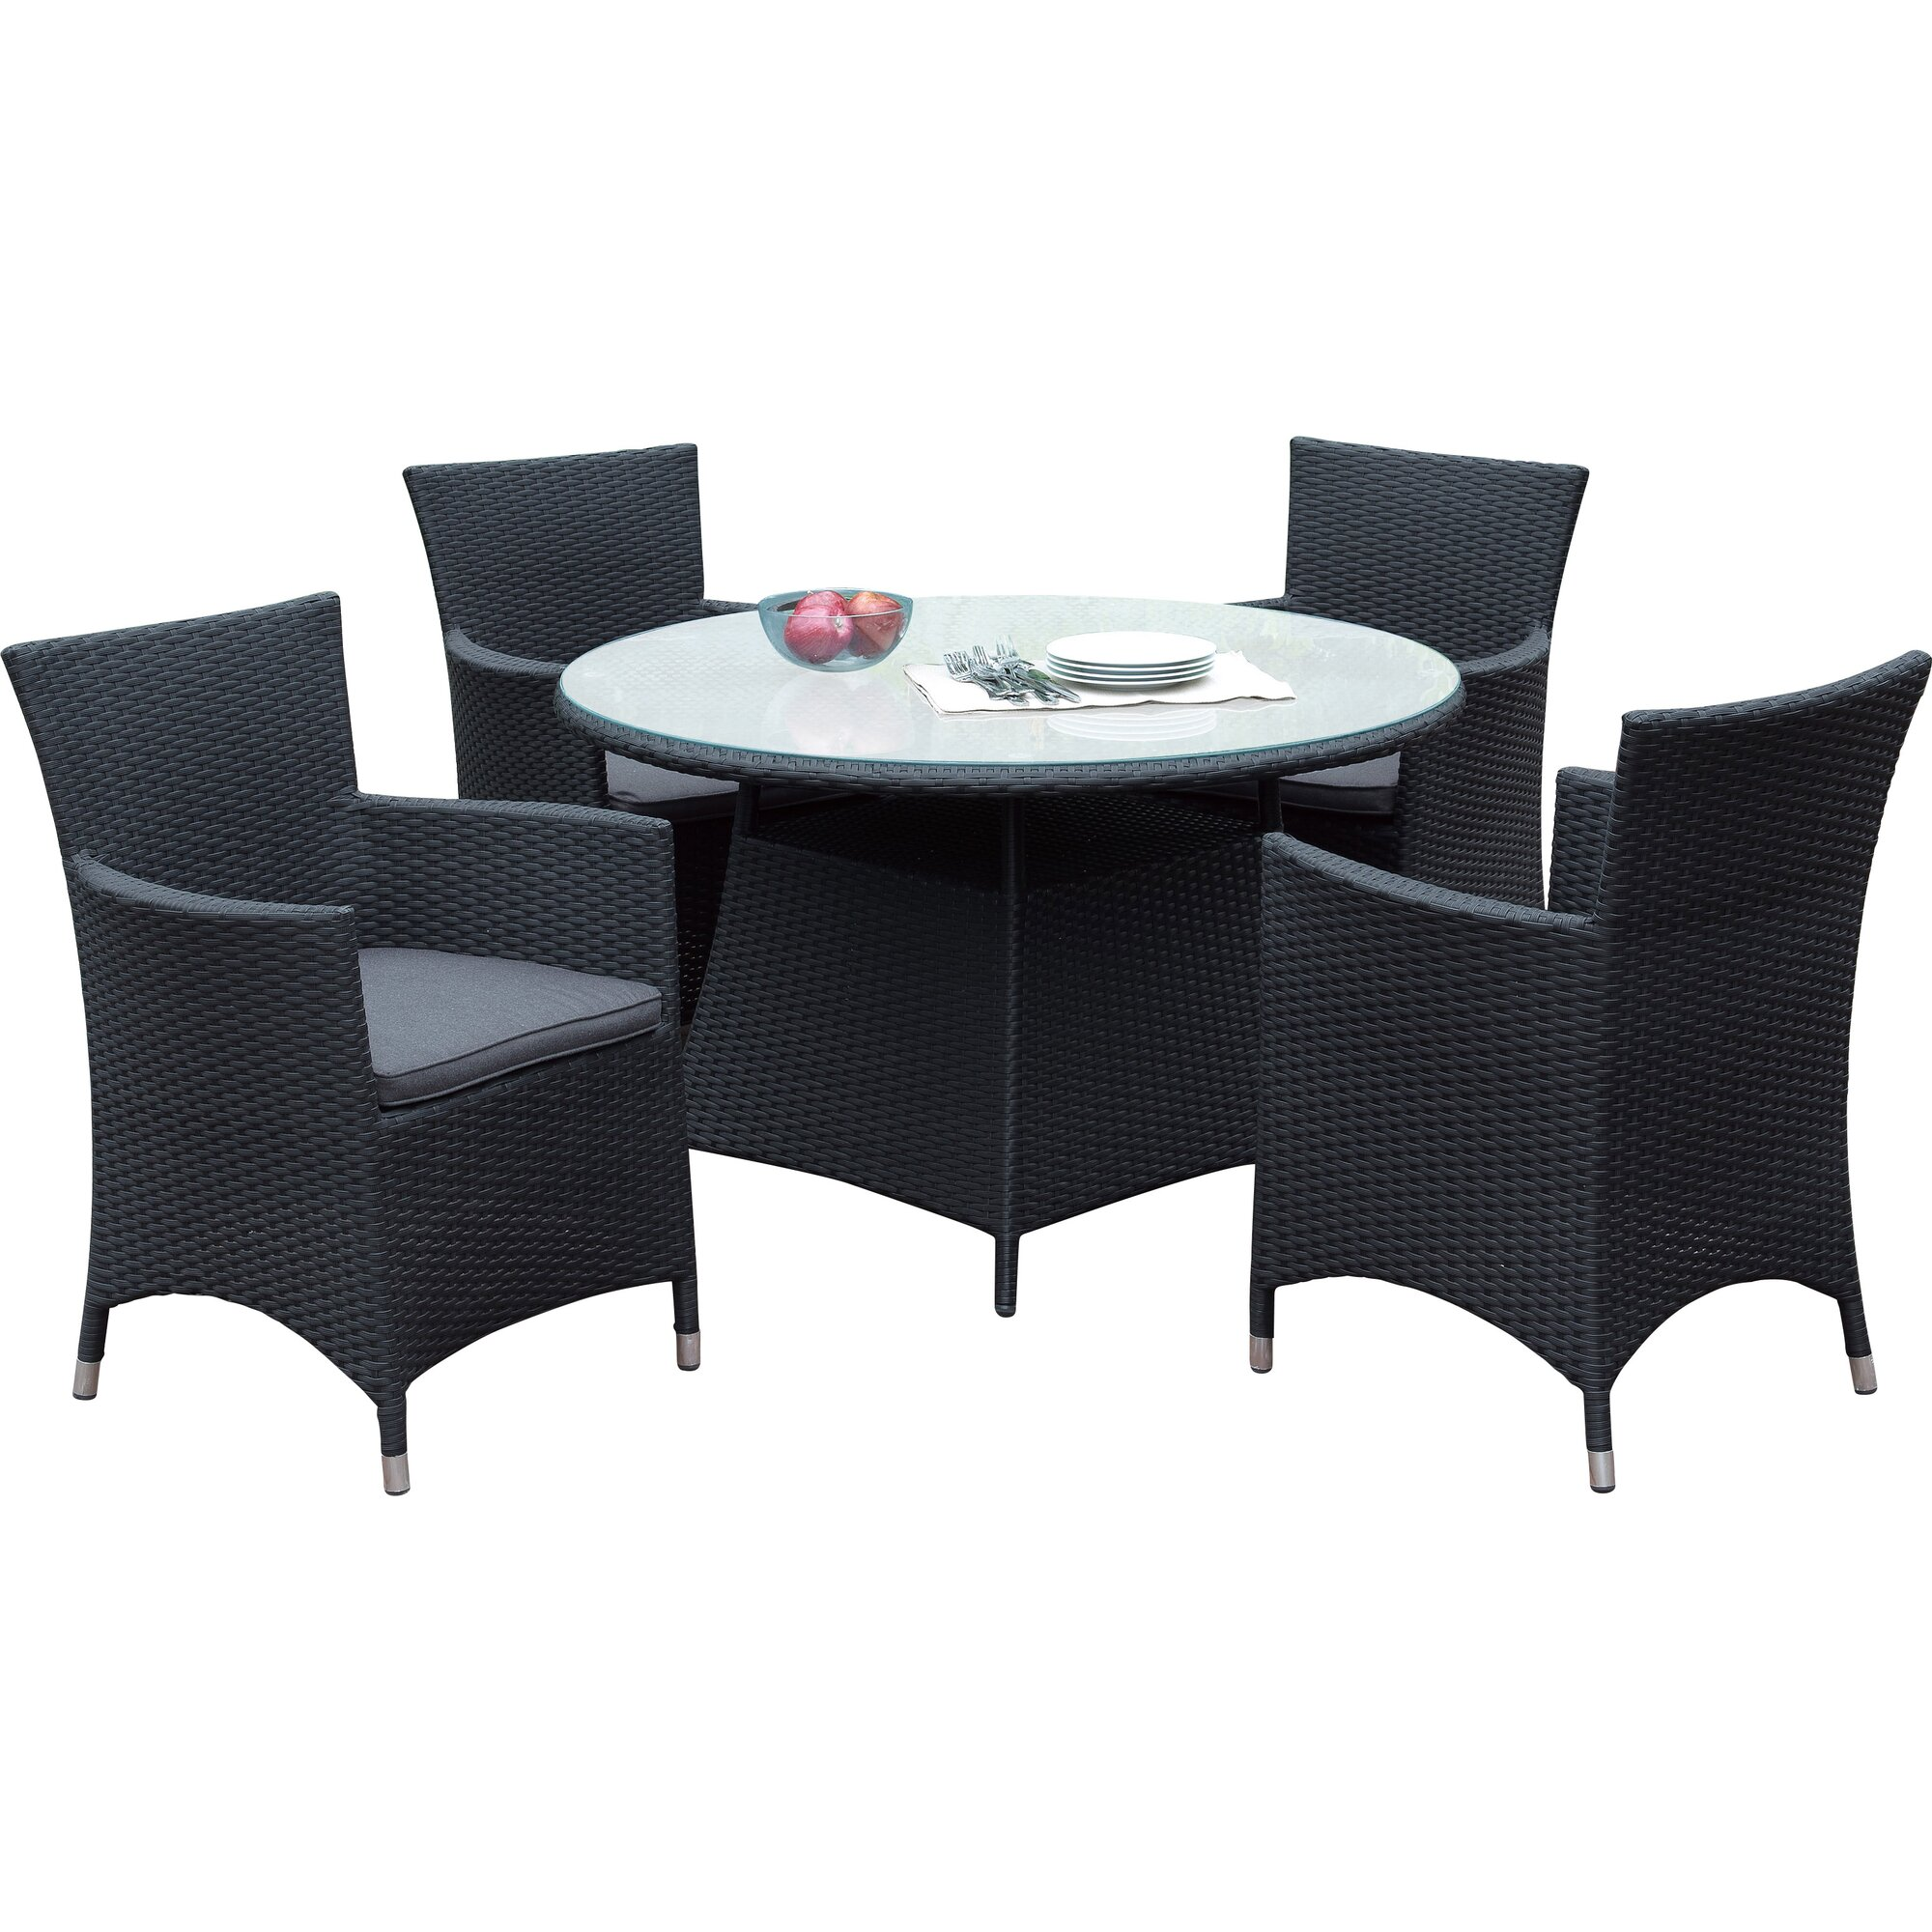 A Amp J Homes Studio Joey 5 Piece Dining Set With Cushions